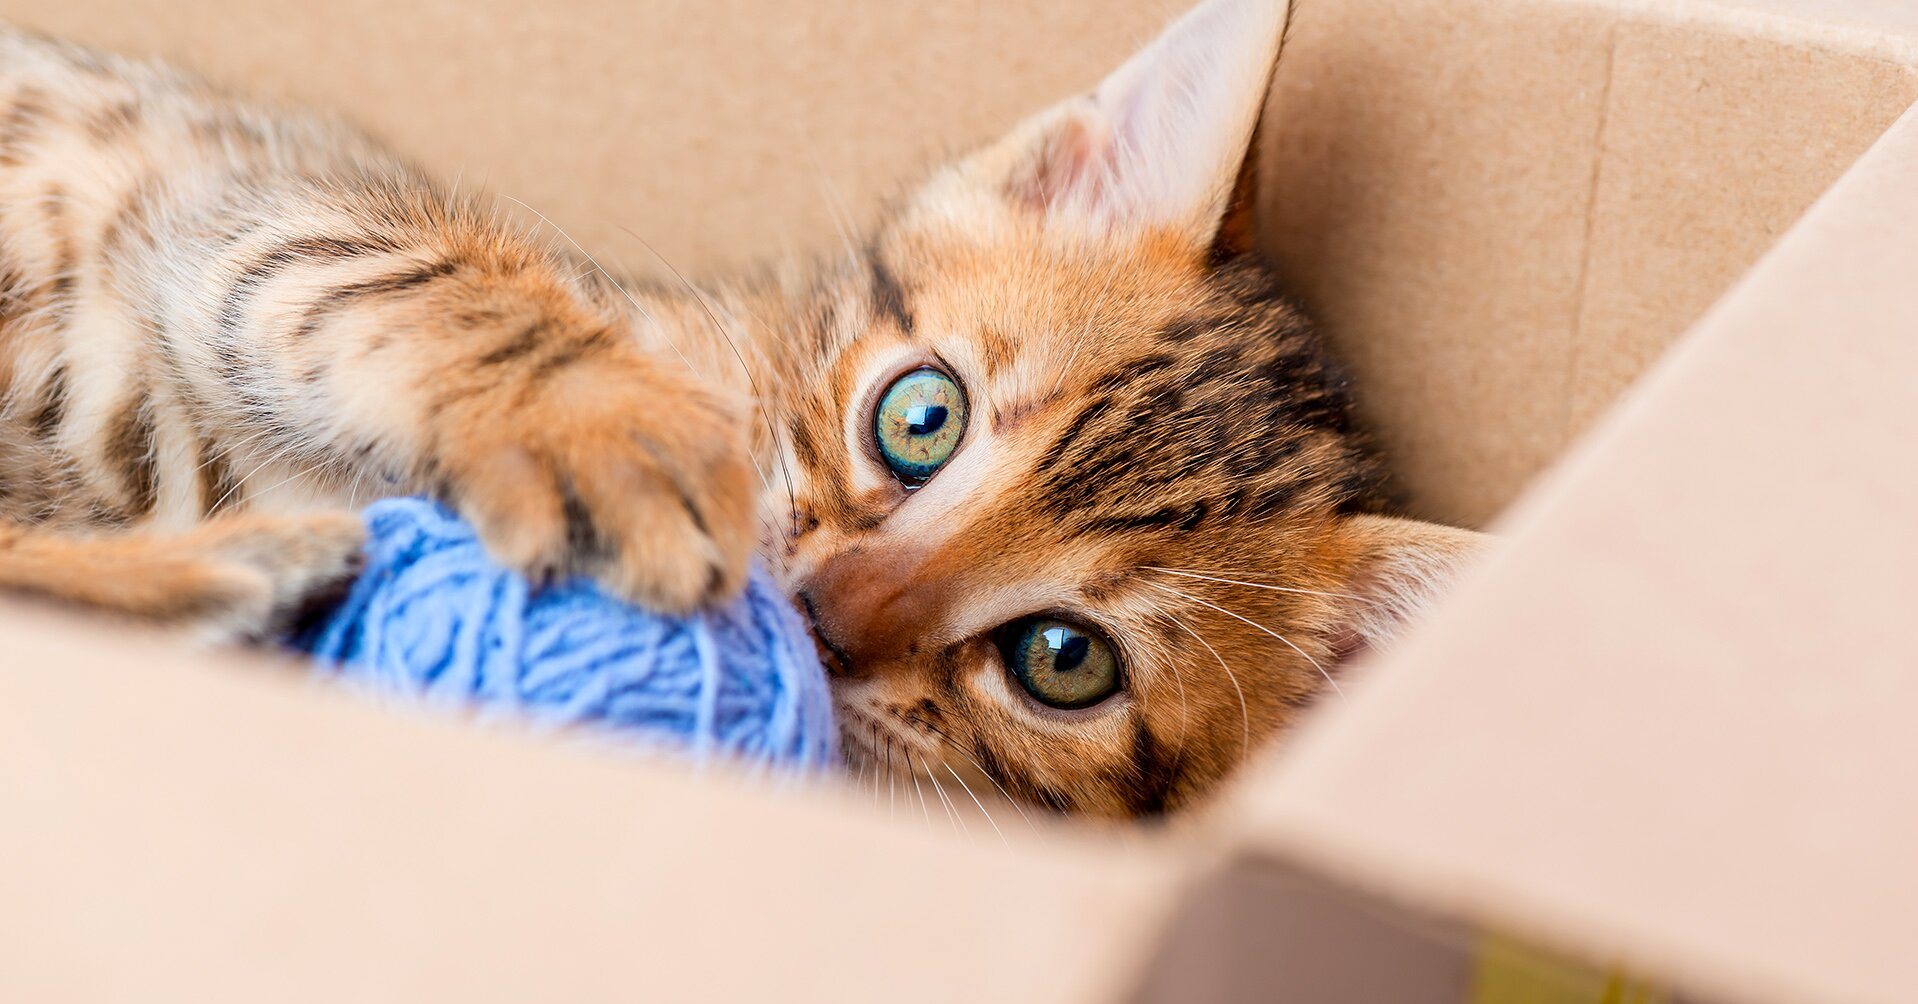 Why Does Your Cat Like Boxes So Much?